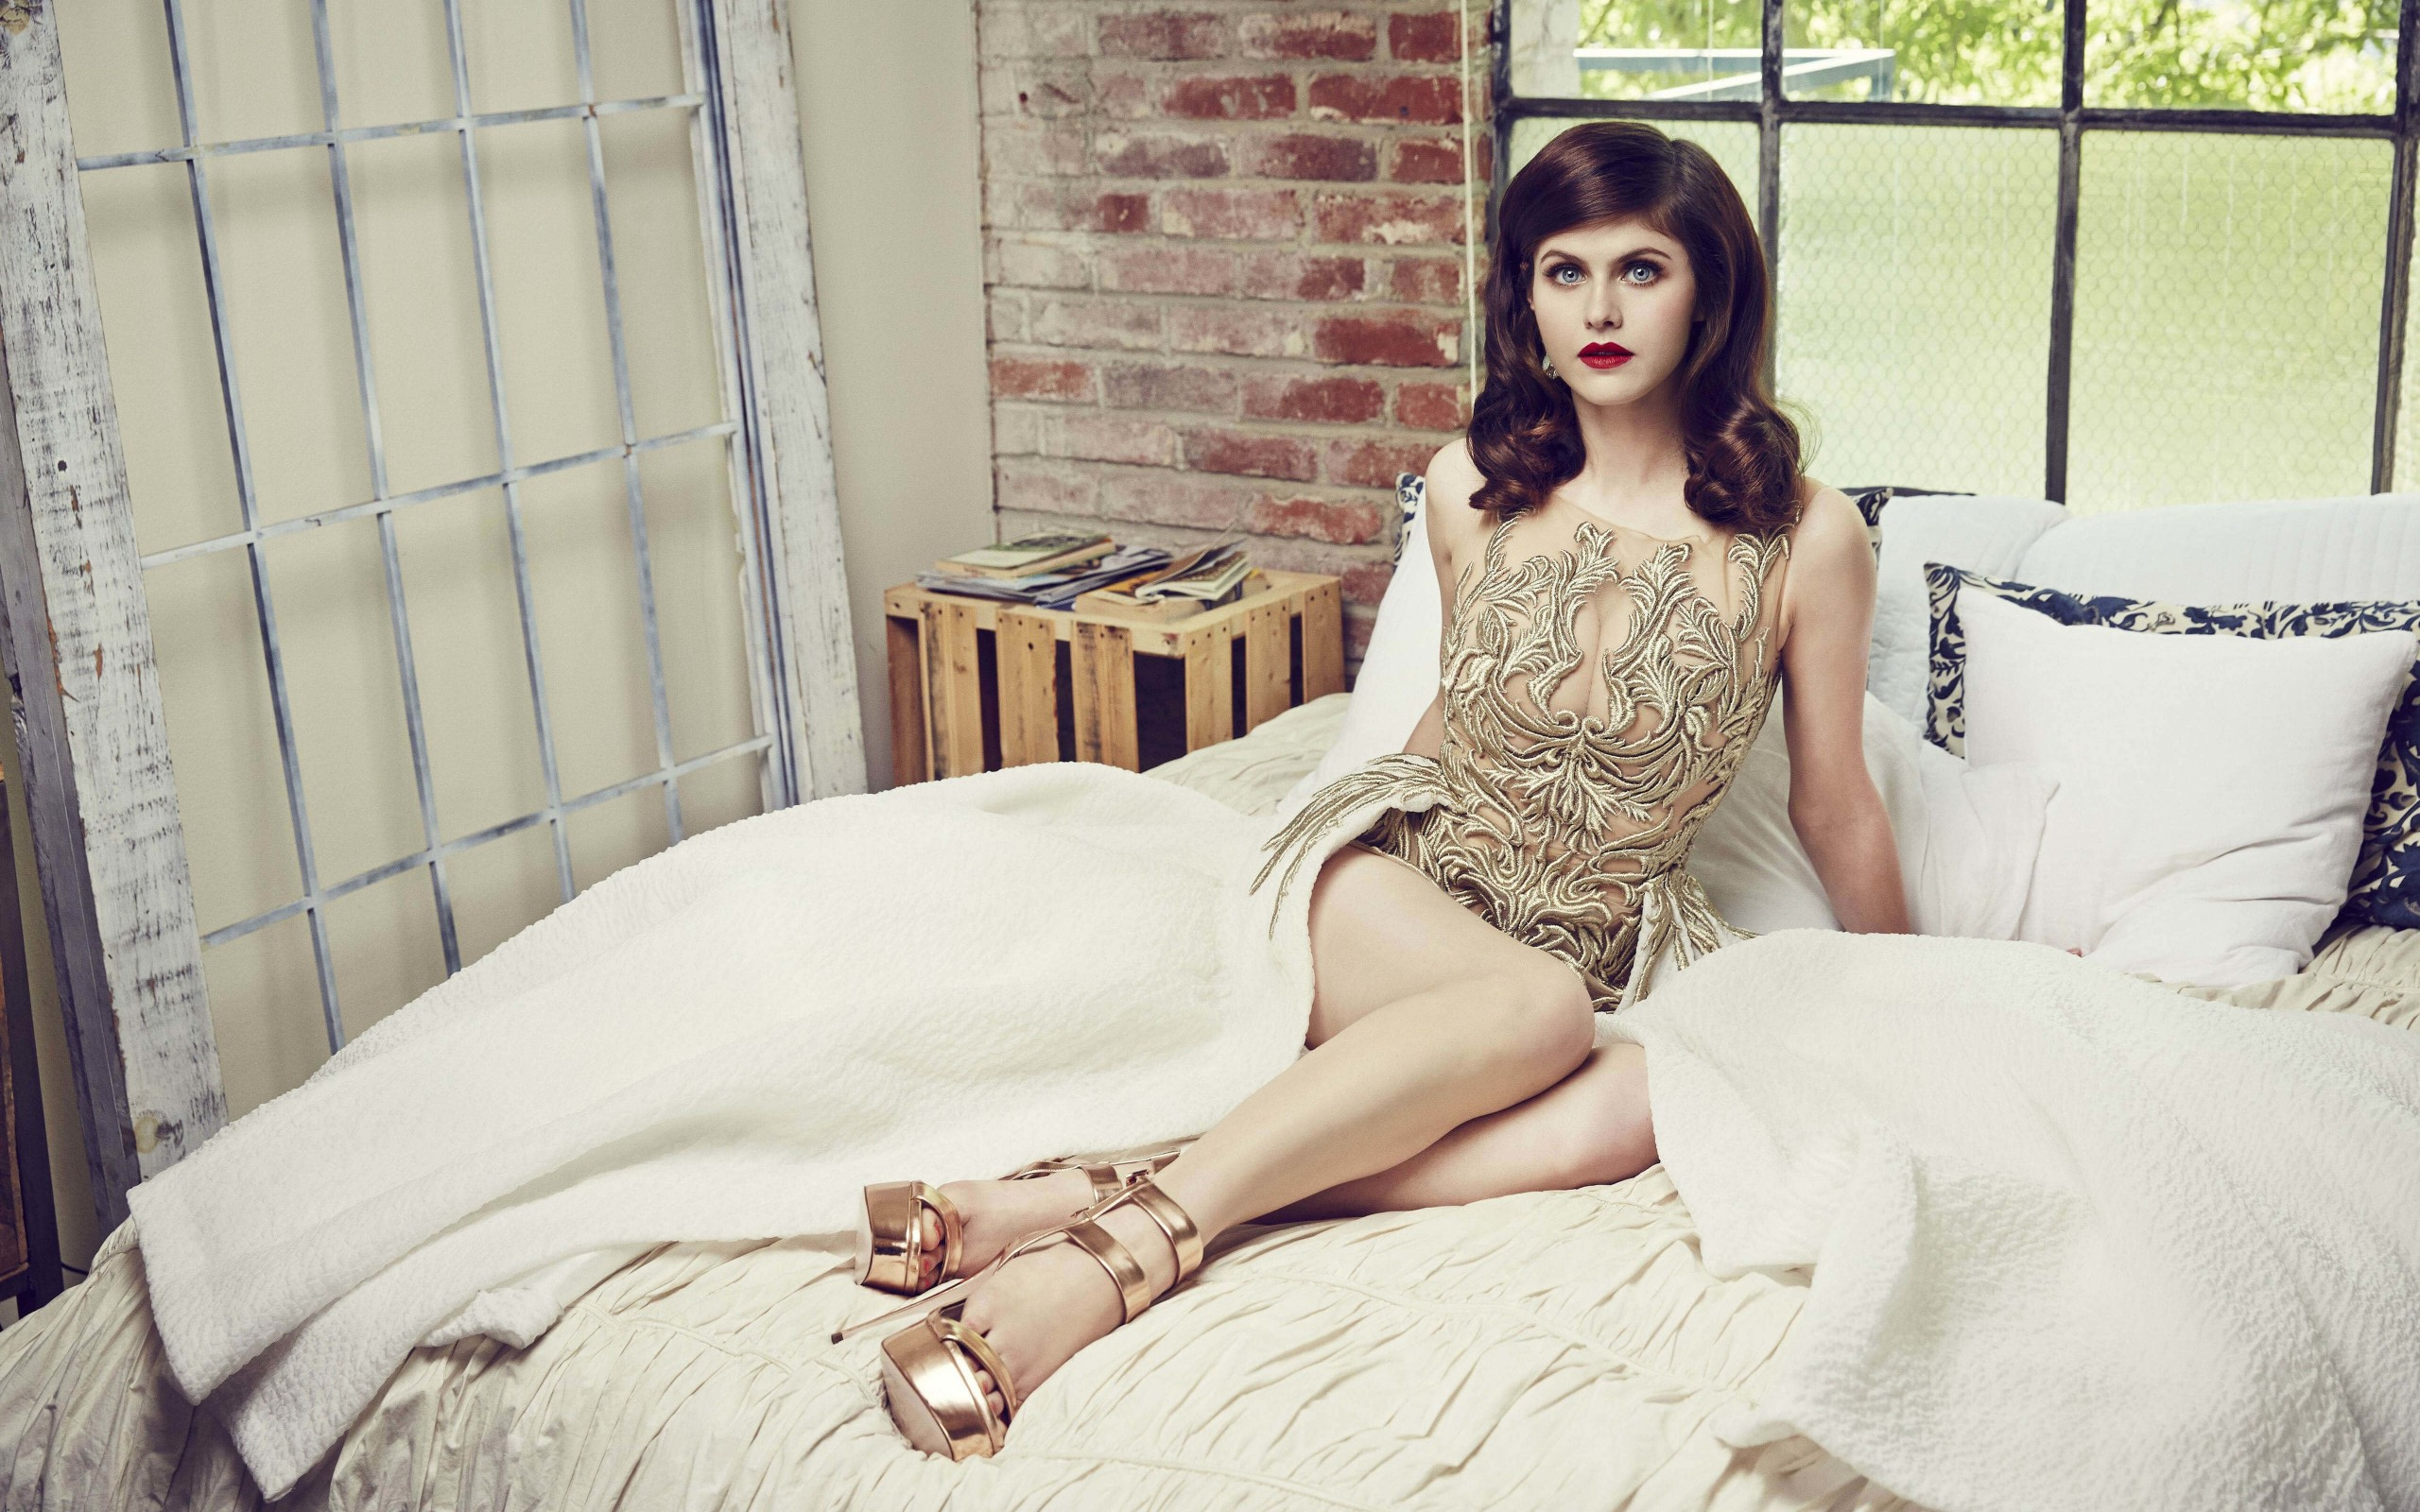 Alexandra Daddario Posing Wallpaper for Desktop 2560x1600